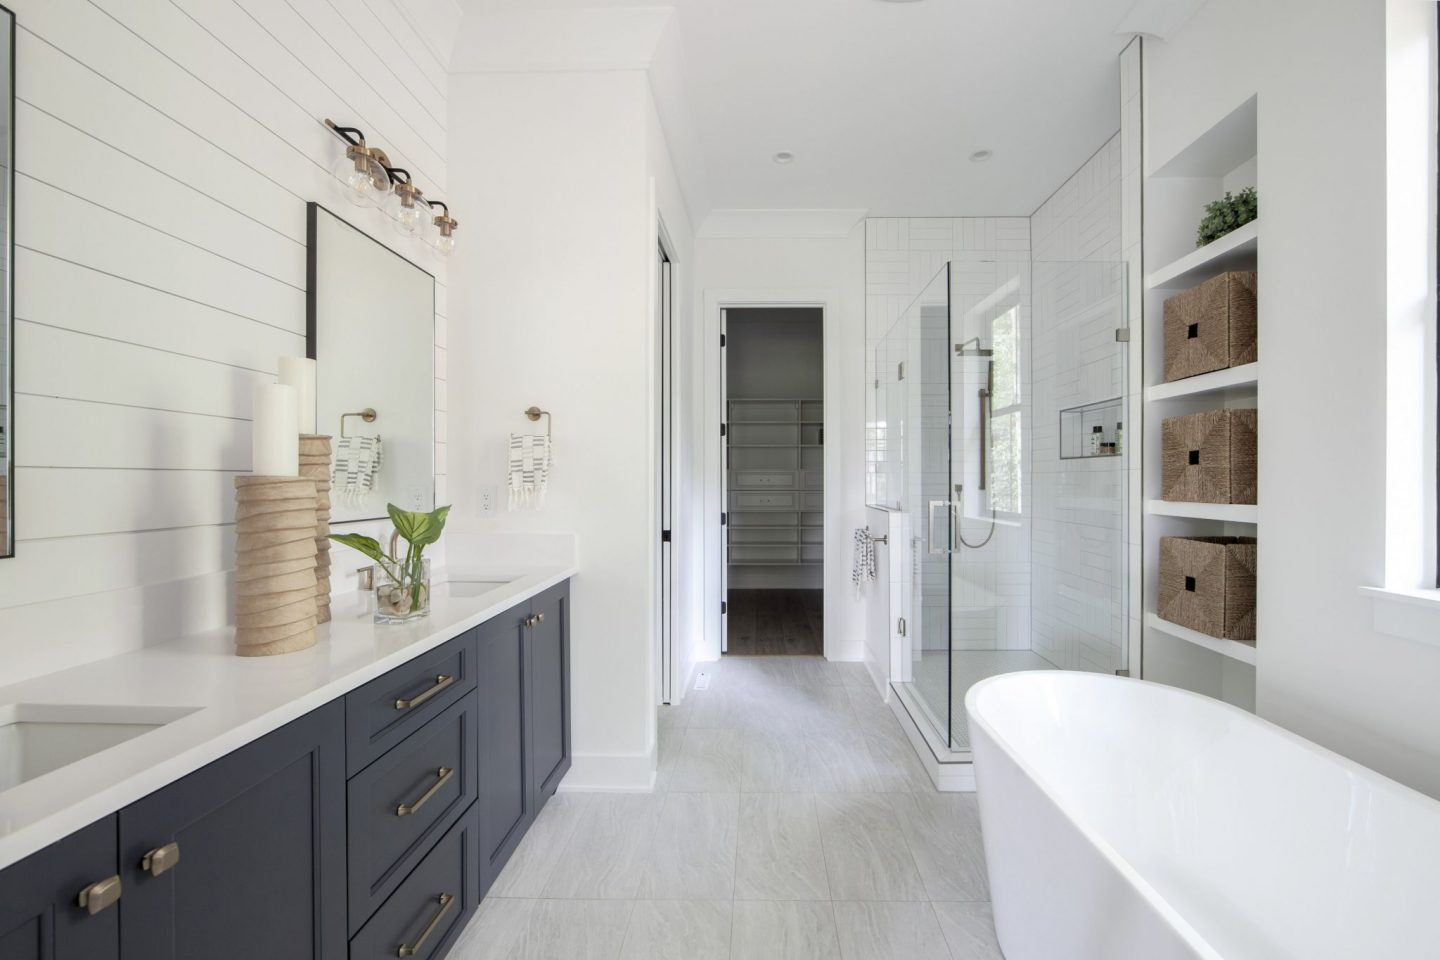 luxury master bathroom - modern home -  Schwaiger realty group